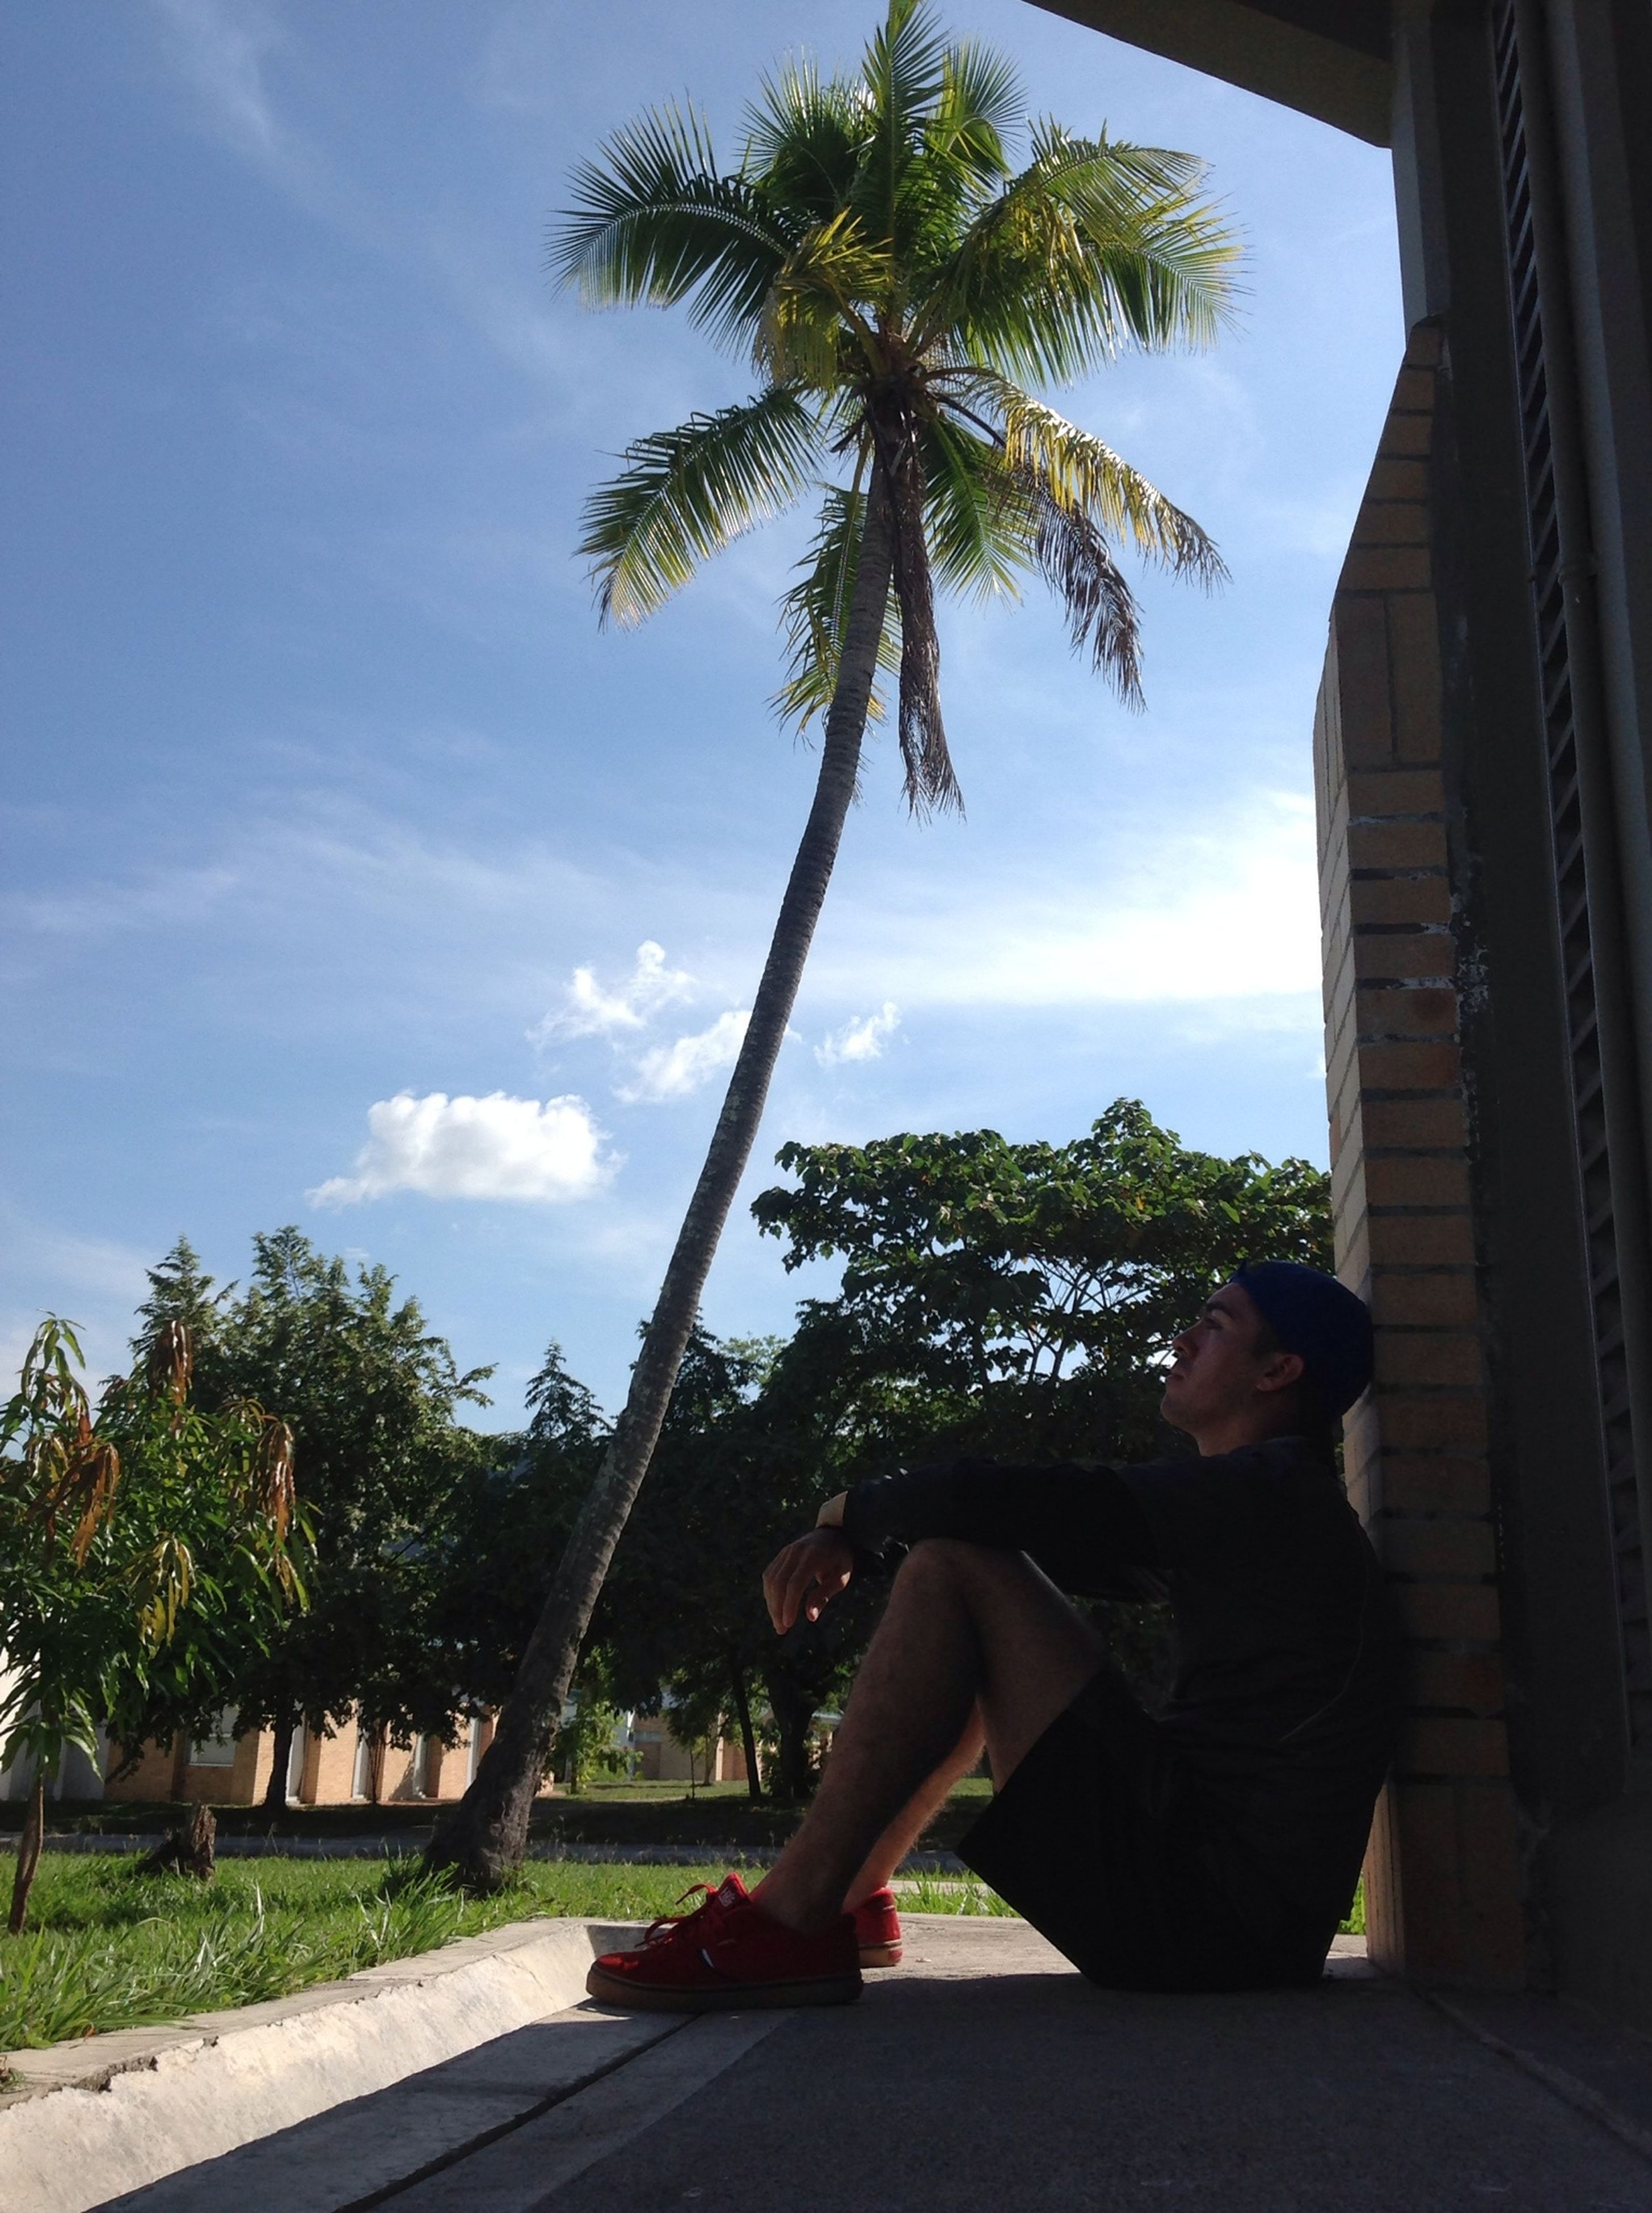 tree, lifestyles, leisure activity, sky, casual clothing, young adult, full length, relaxation, young women, person, sitting, palm tree, built structure, standing, day, rear view, architecture